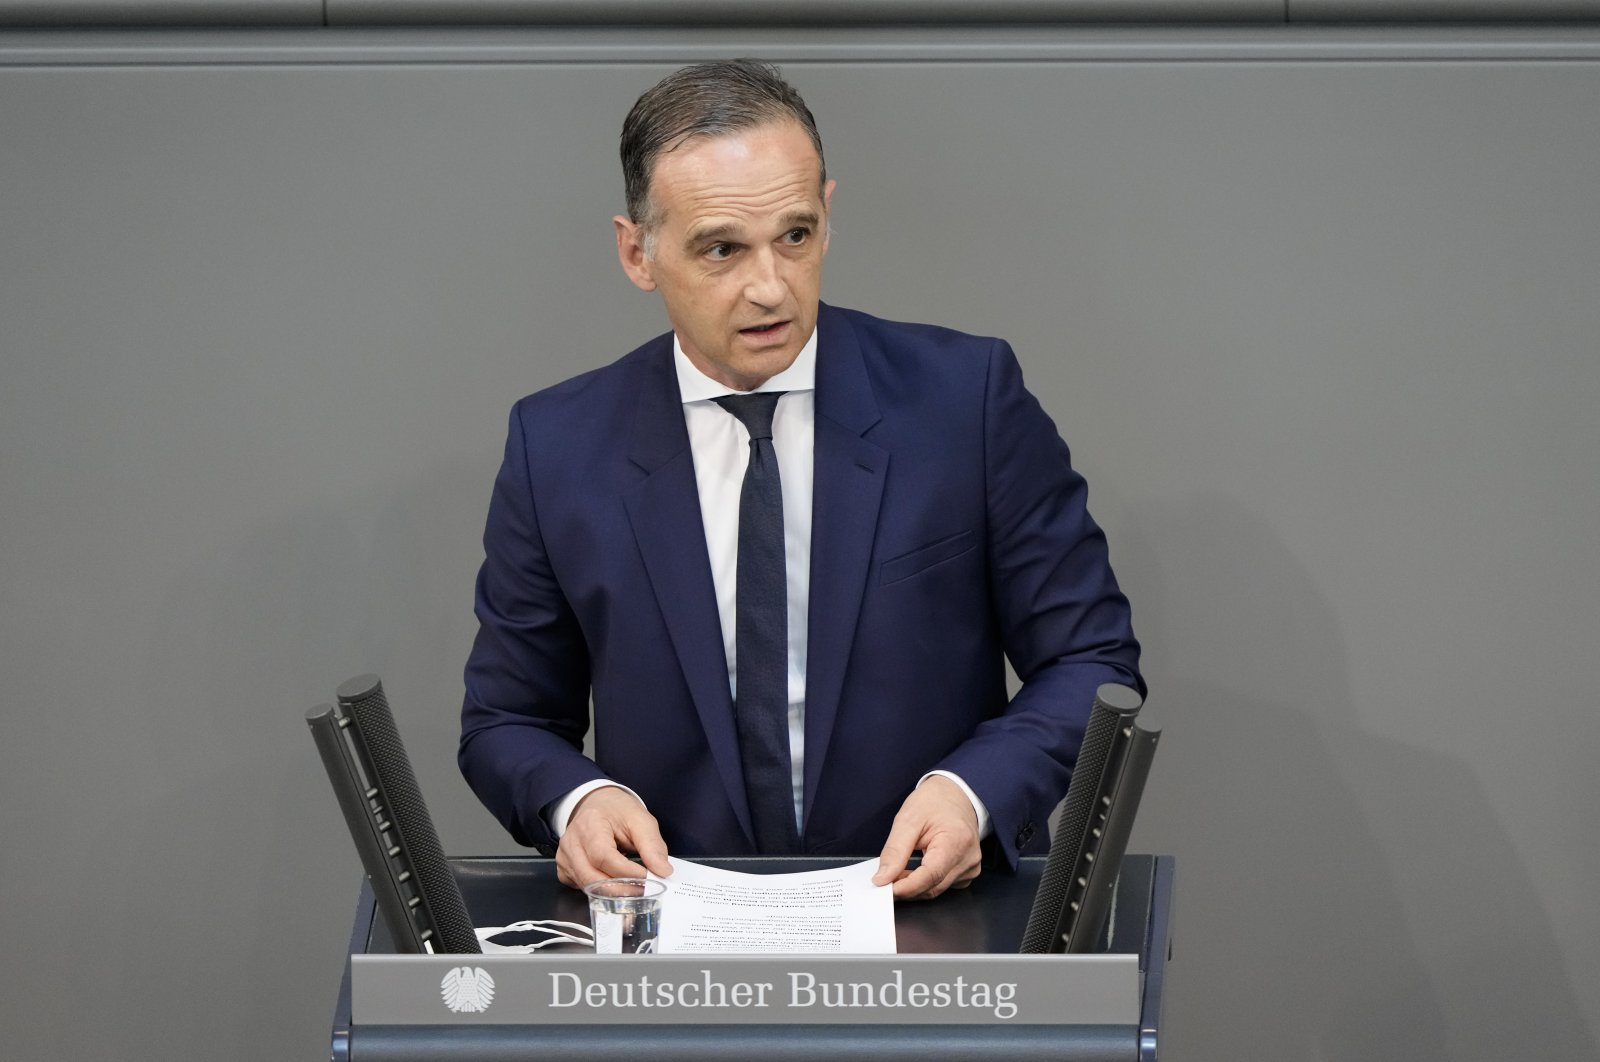 German Foreign Minister Heiko Maas delivers his speech during a debate about the 80th anniversary of the Nazi Germany attack on the Soviet Union, at Germany's Bundestag in Berlin, Germany, June 9, 2021. (AP Photo)